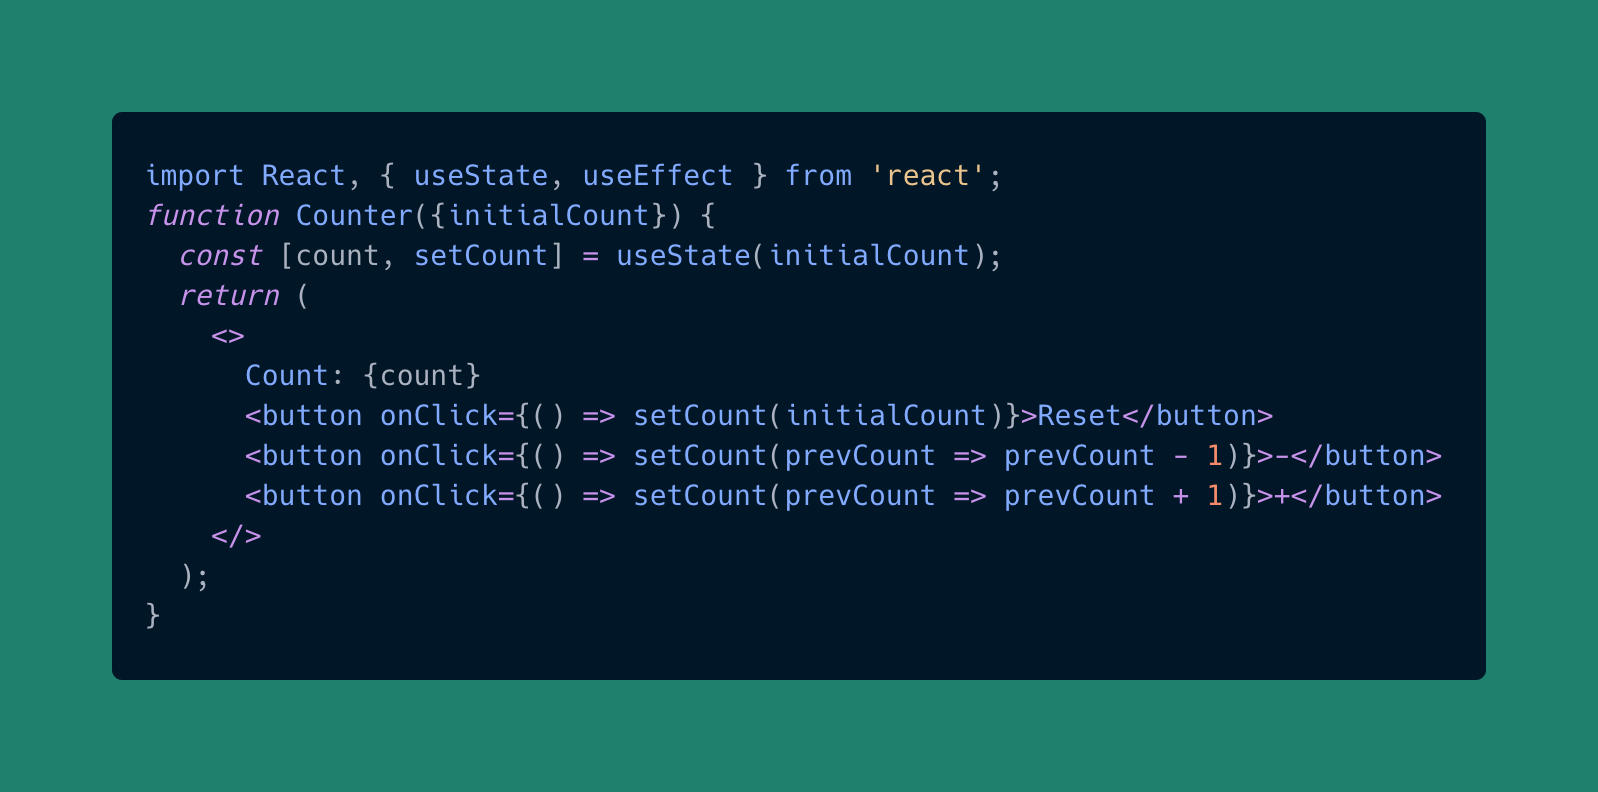 useState hook in React